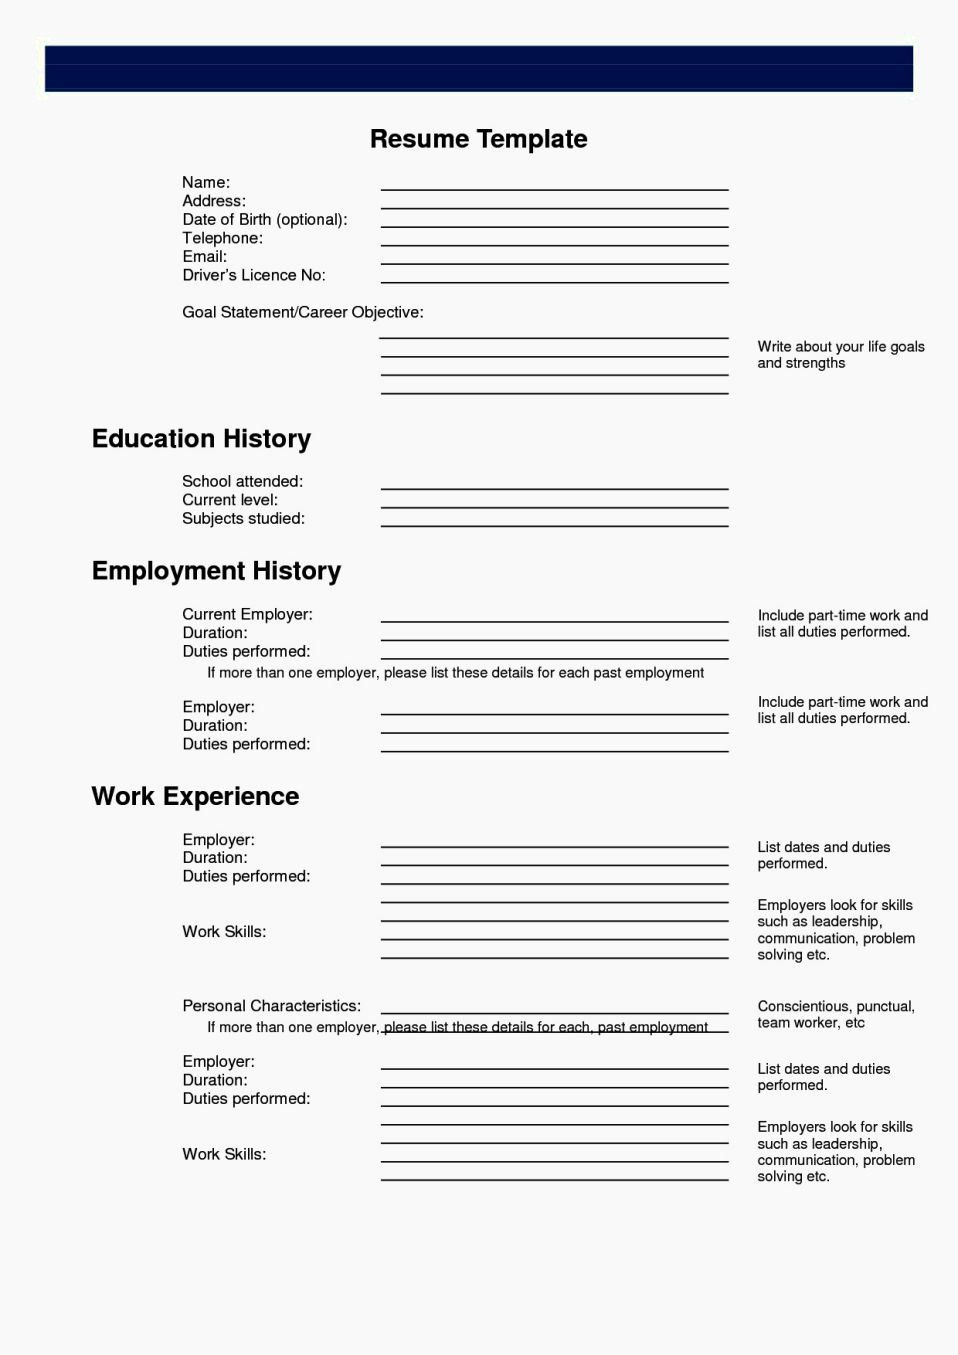 Resume Template Fill In New Easy Fill In Resume Resume Template In